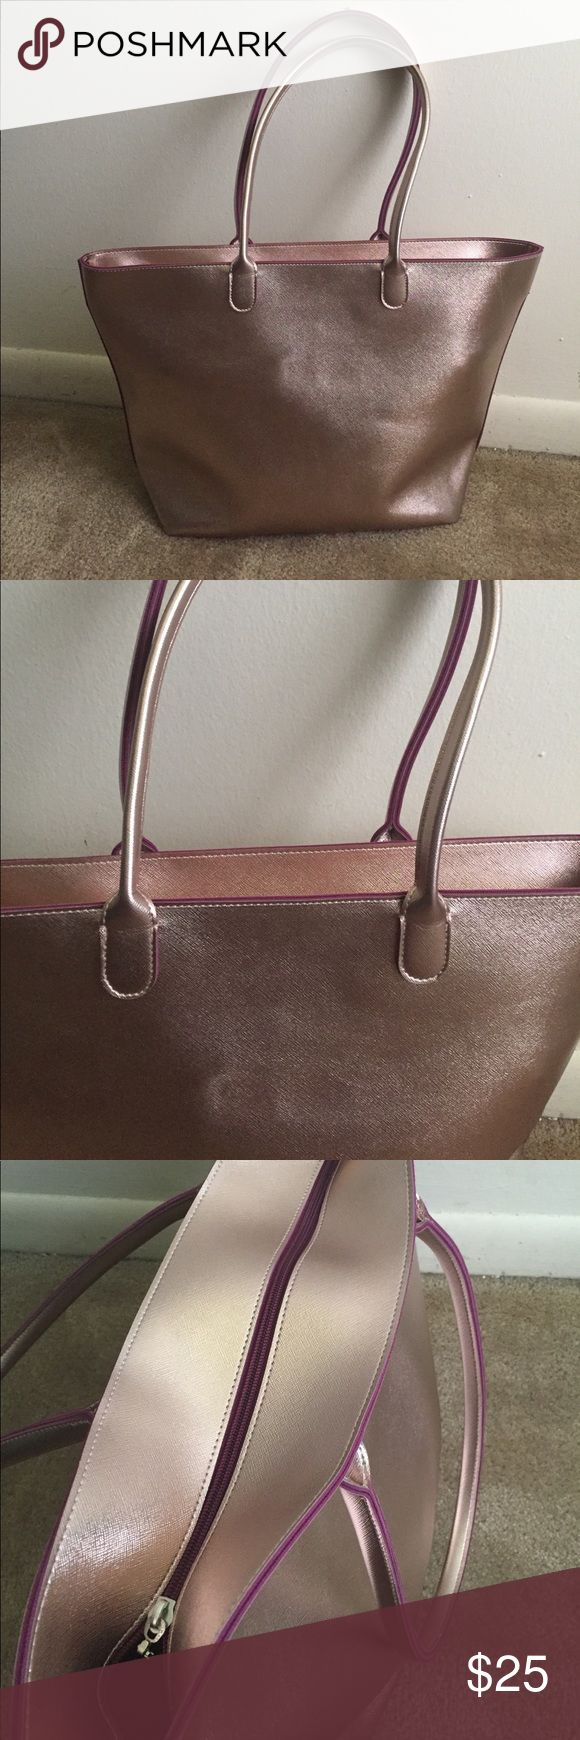 Bath and body work tote bag Beautiful rose gold! Good condition. Looking to sell, not accepting trades! Bags Totes